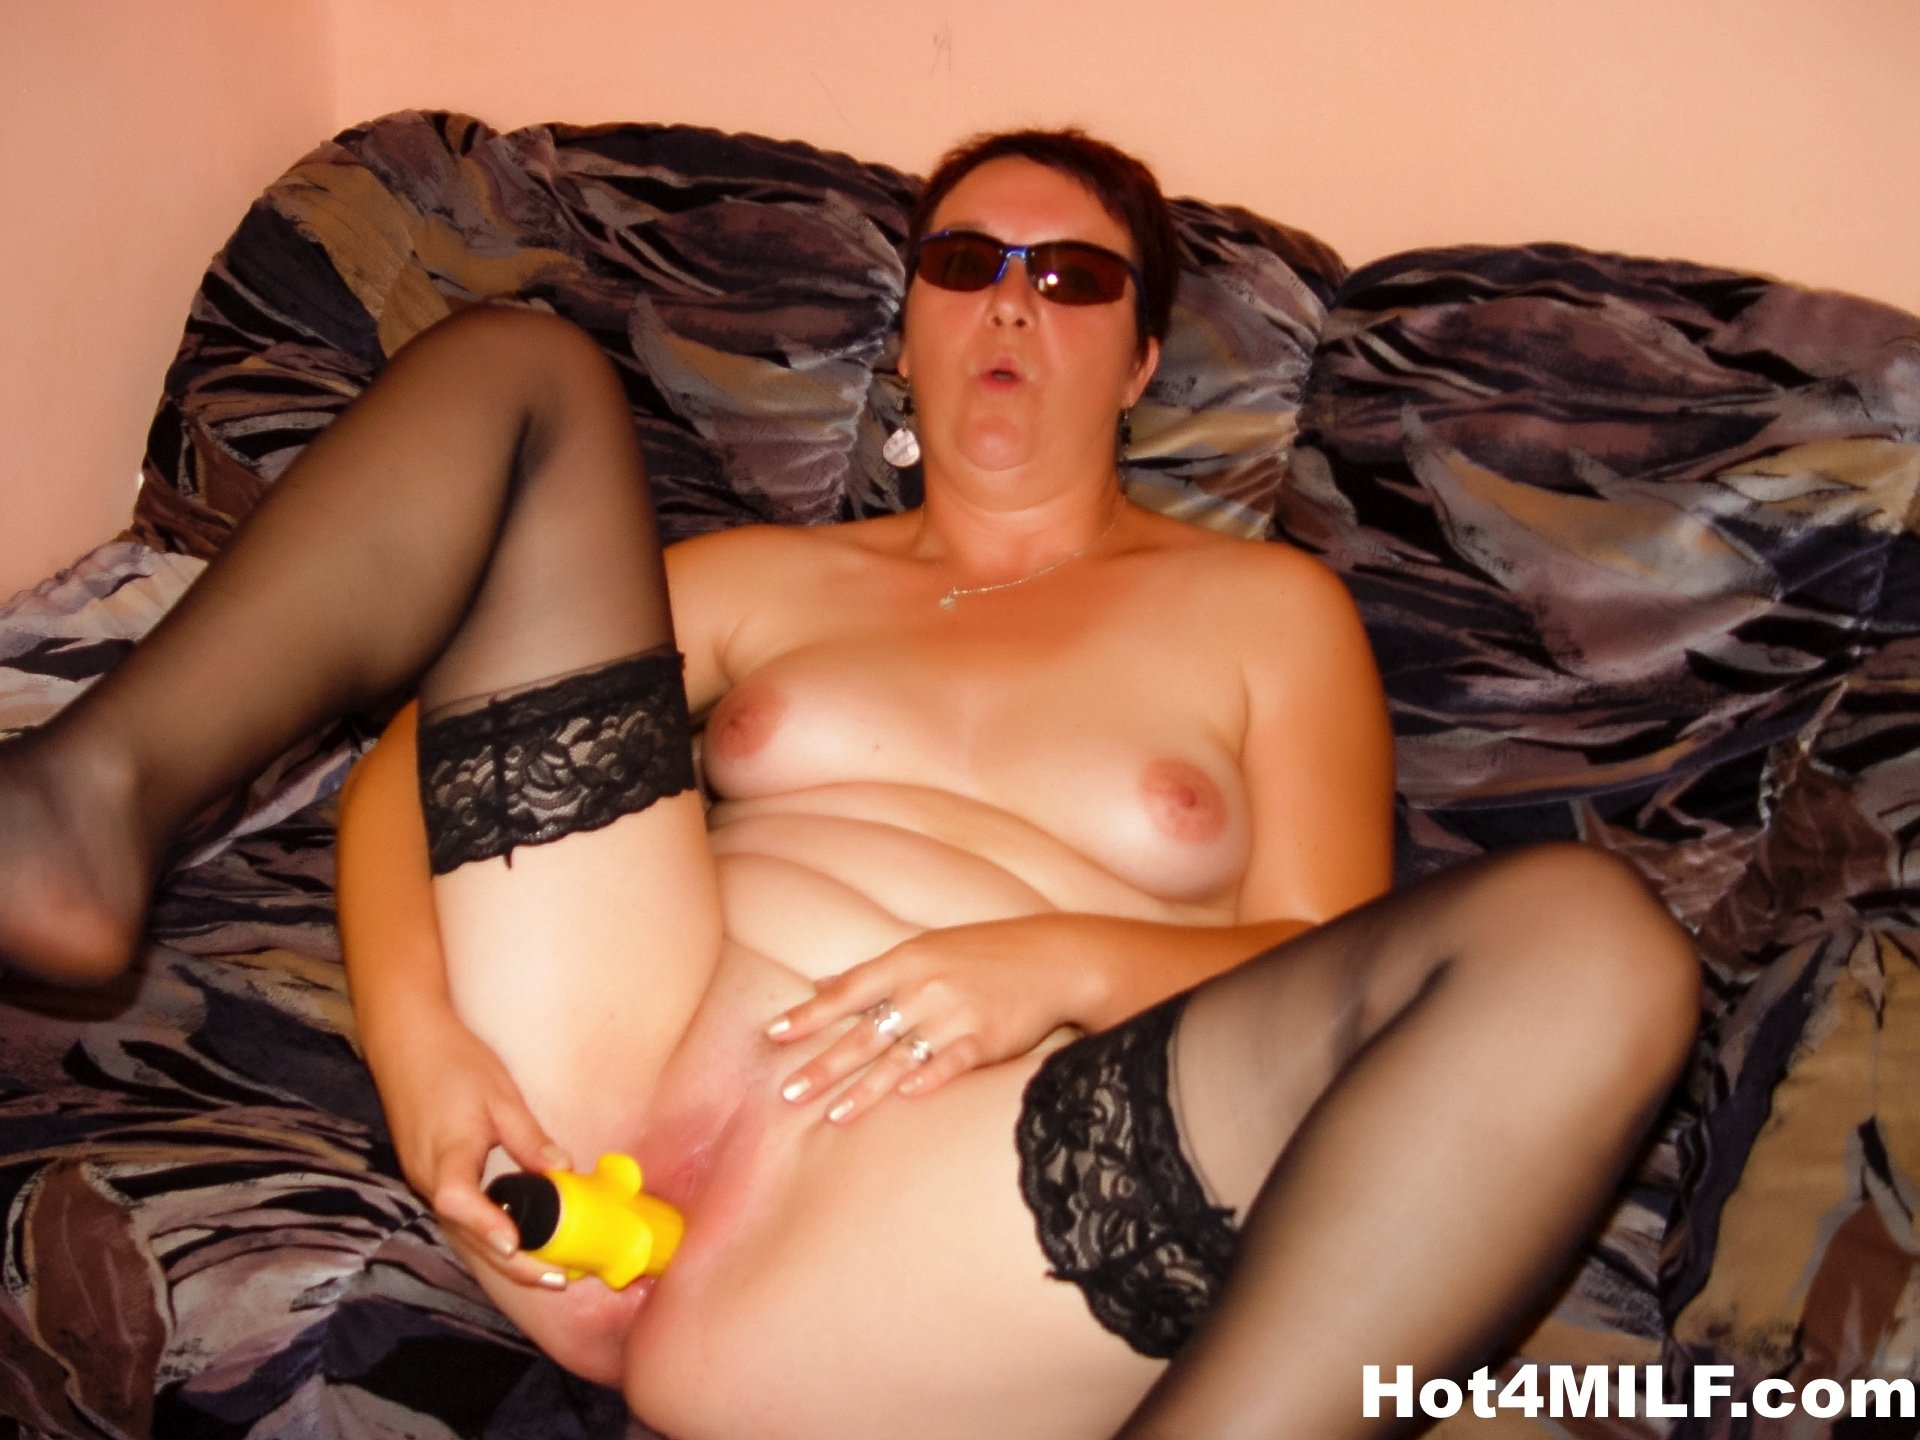 Monique cam Milf mylust malay there